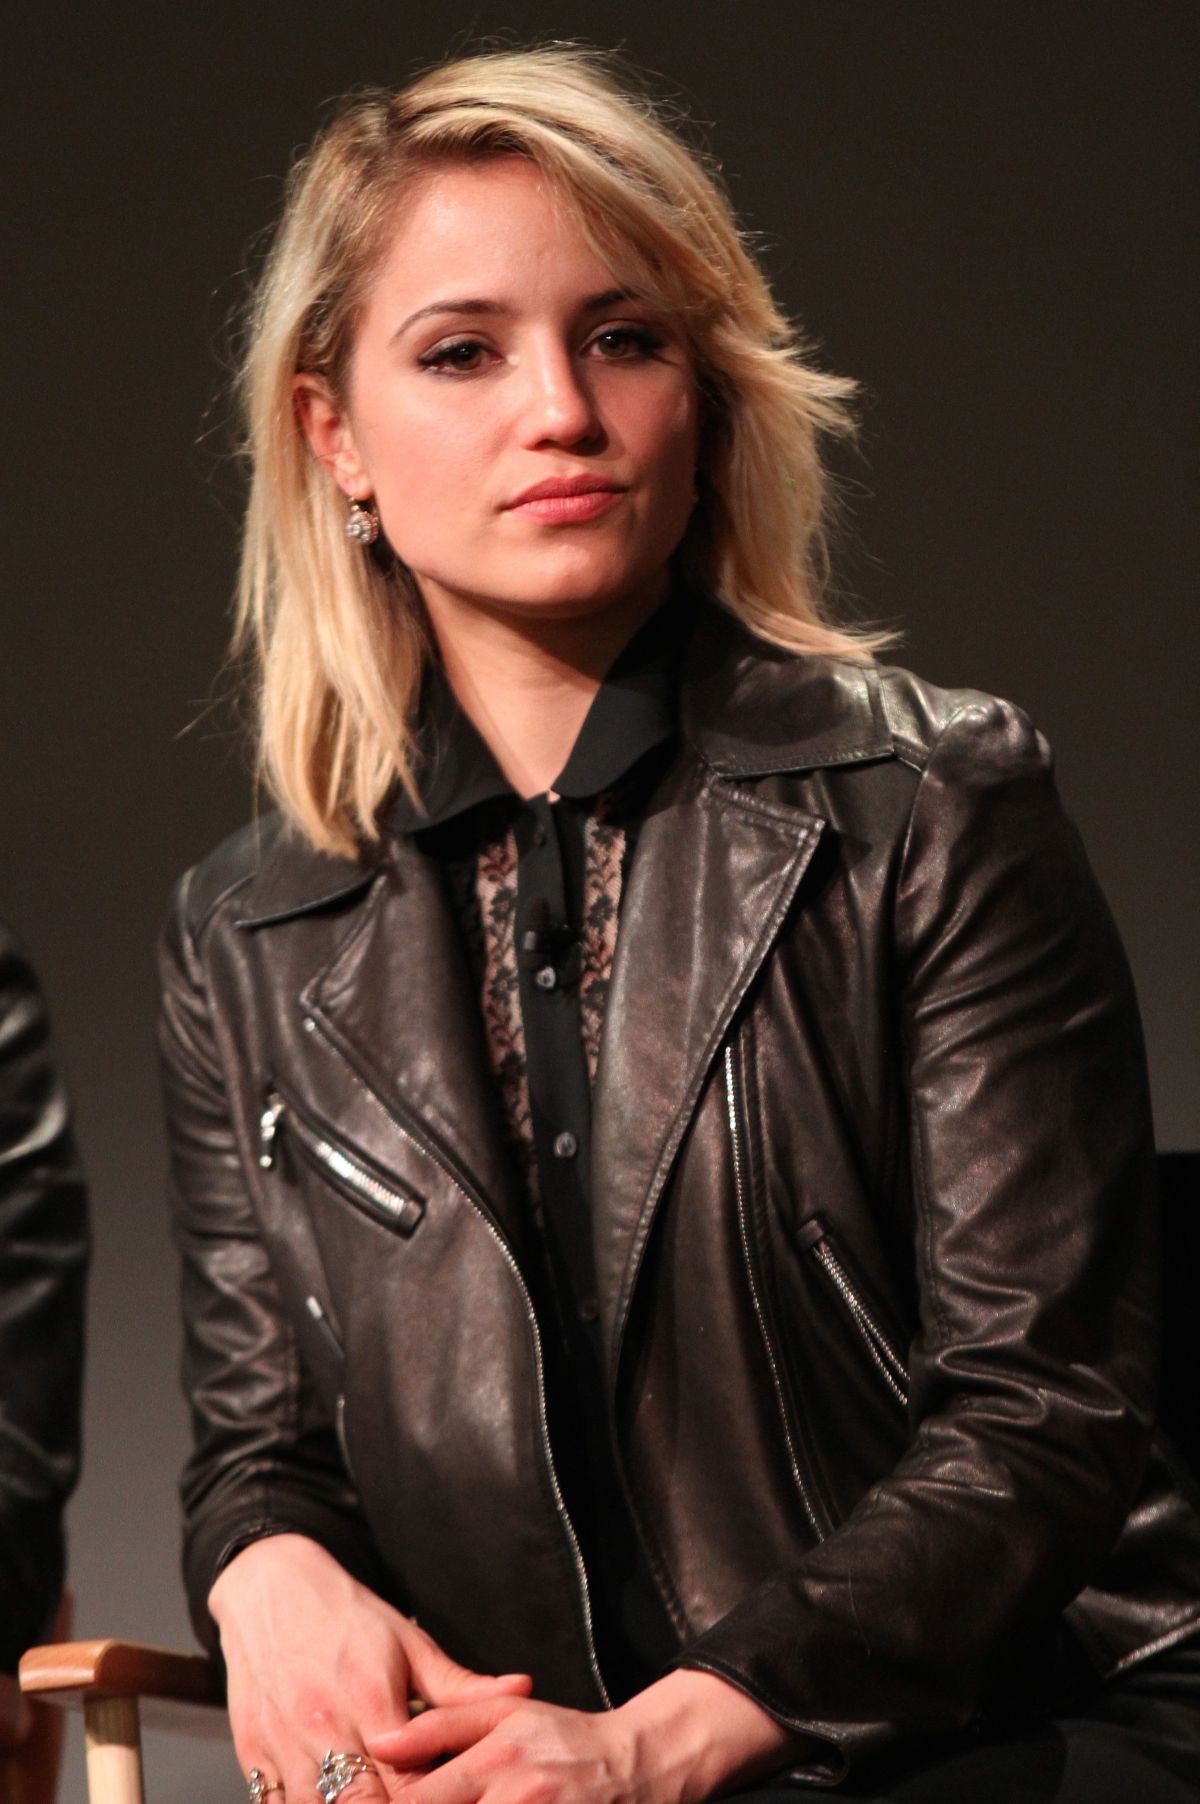 DIANNA AGRON at Apple Store Soho Presents Tribeca Film Festival: Bare in New York